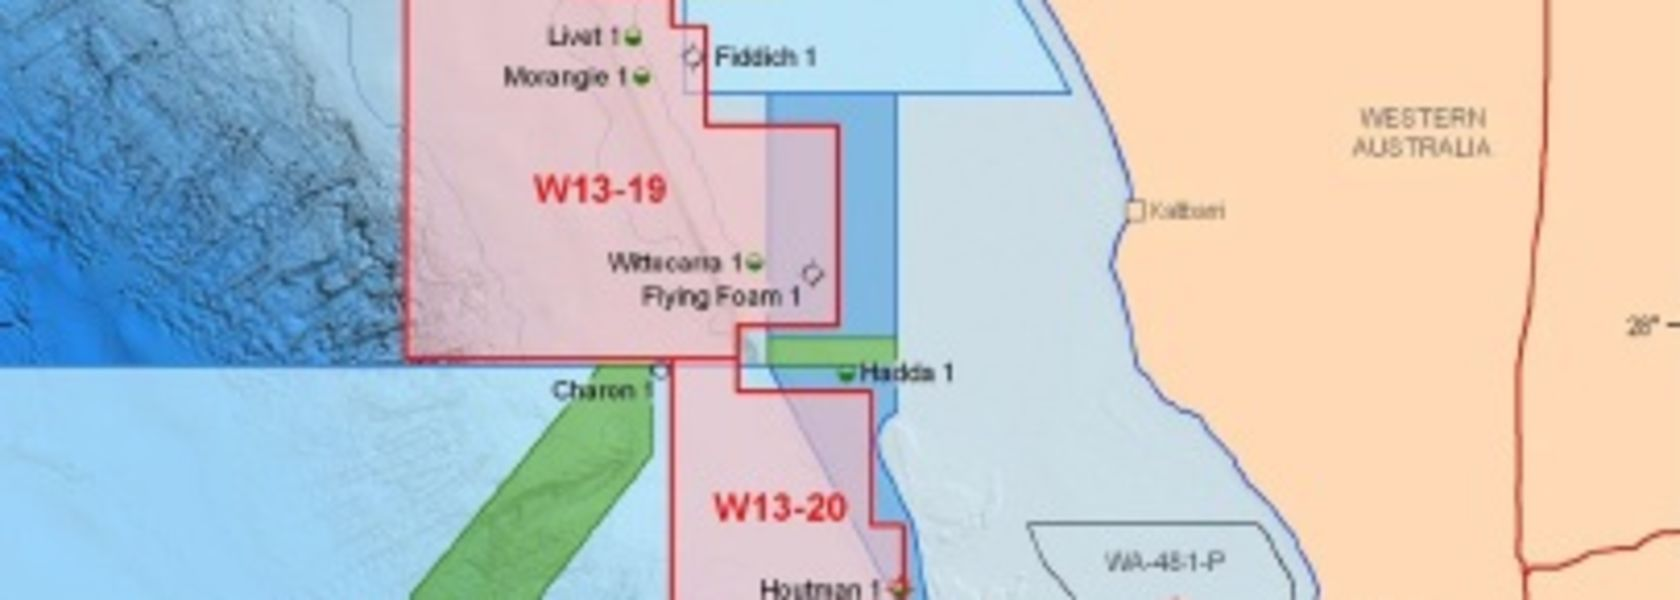 Perth Basin hots up as new oil province